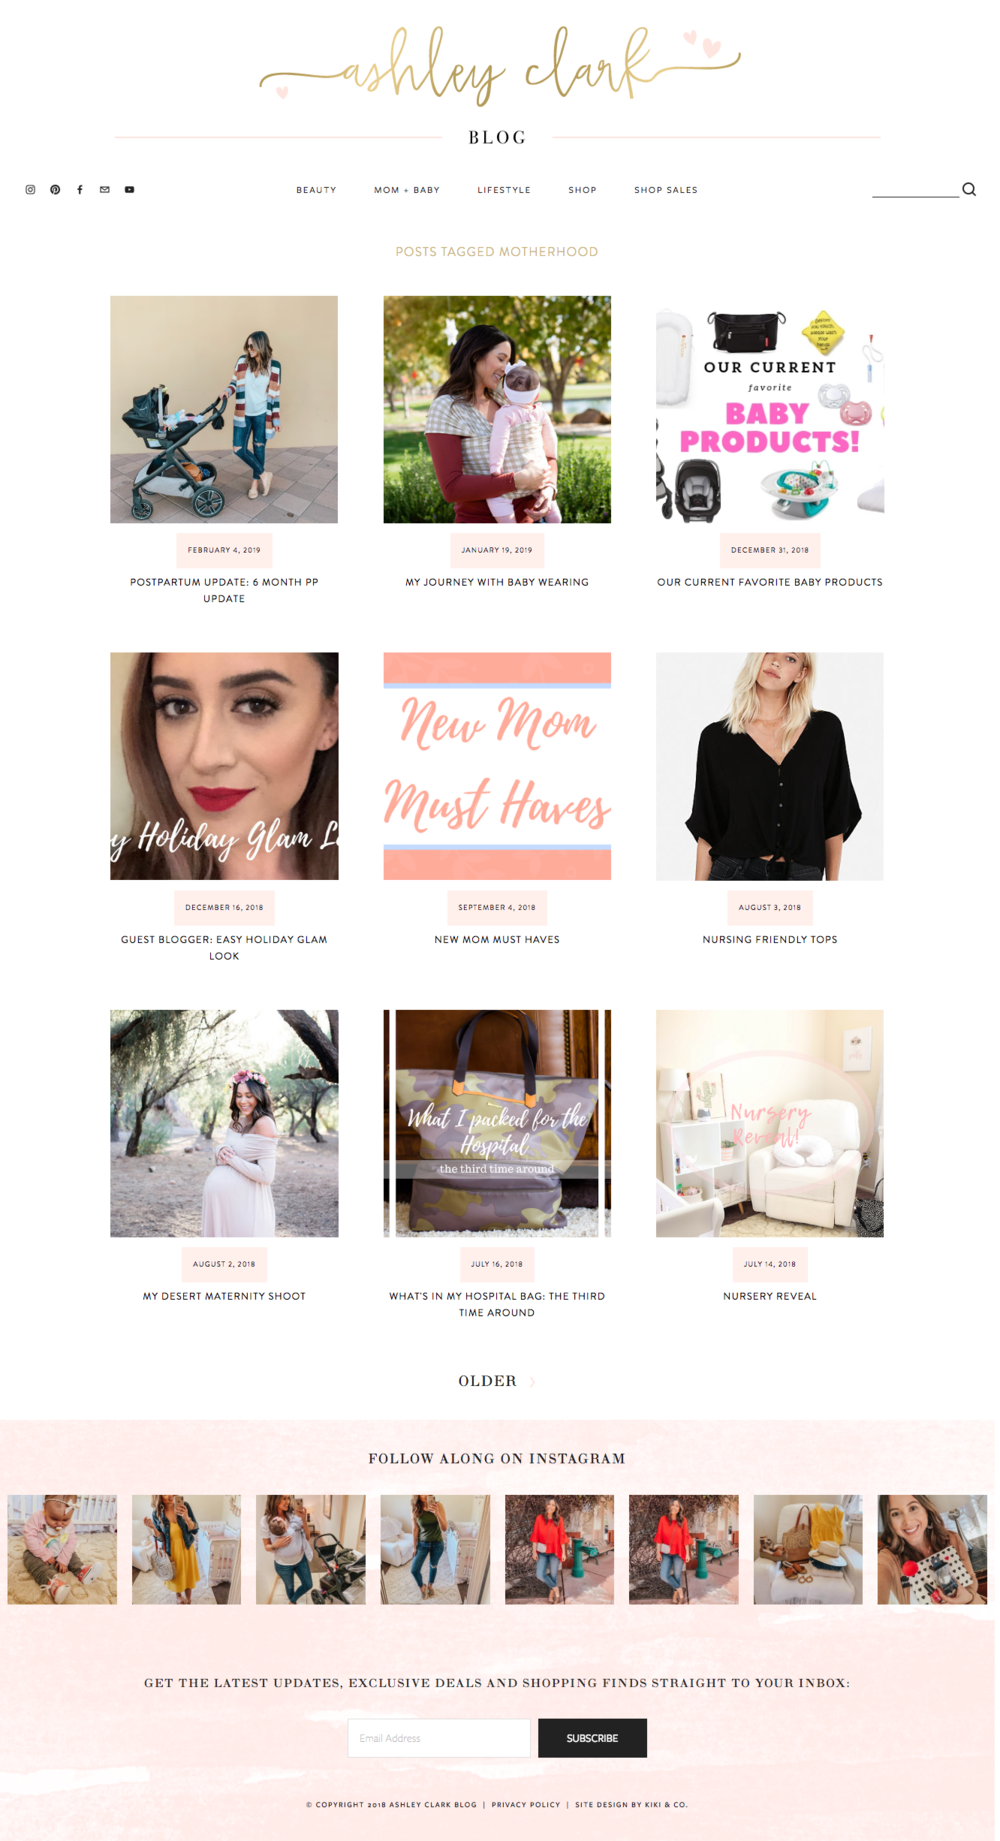 Ashley Clark Blog Design-Squarespace Platform-Kiki and Co. Creative